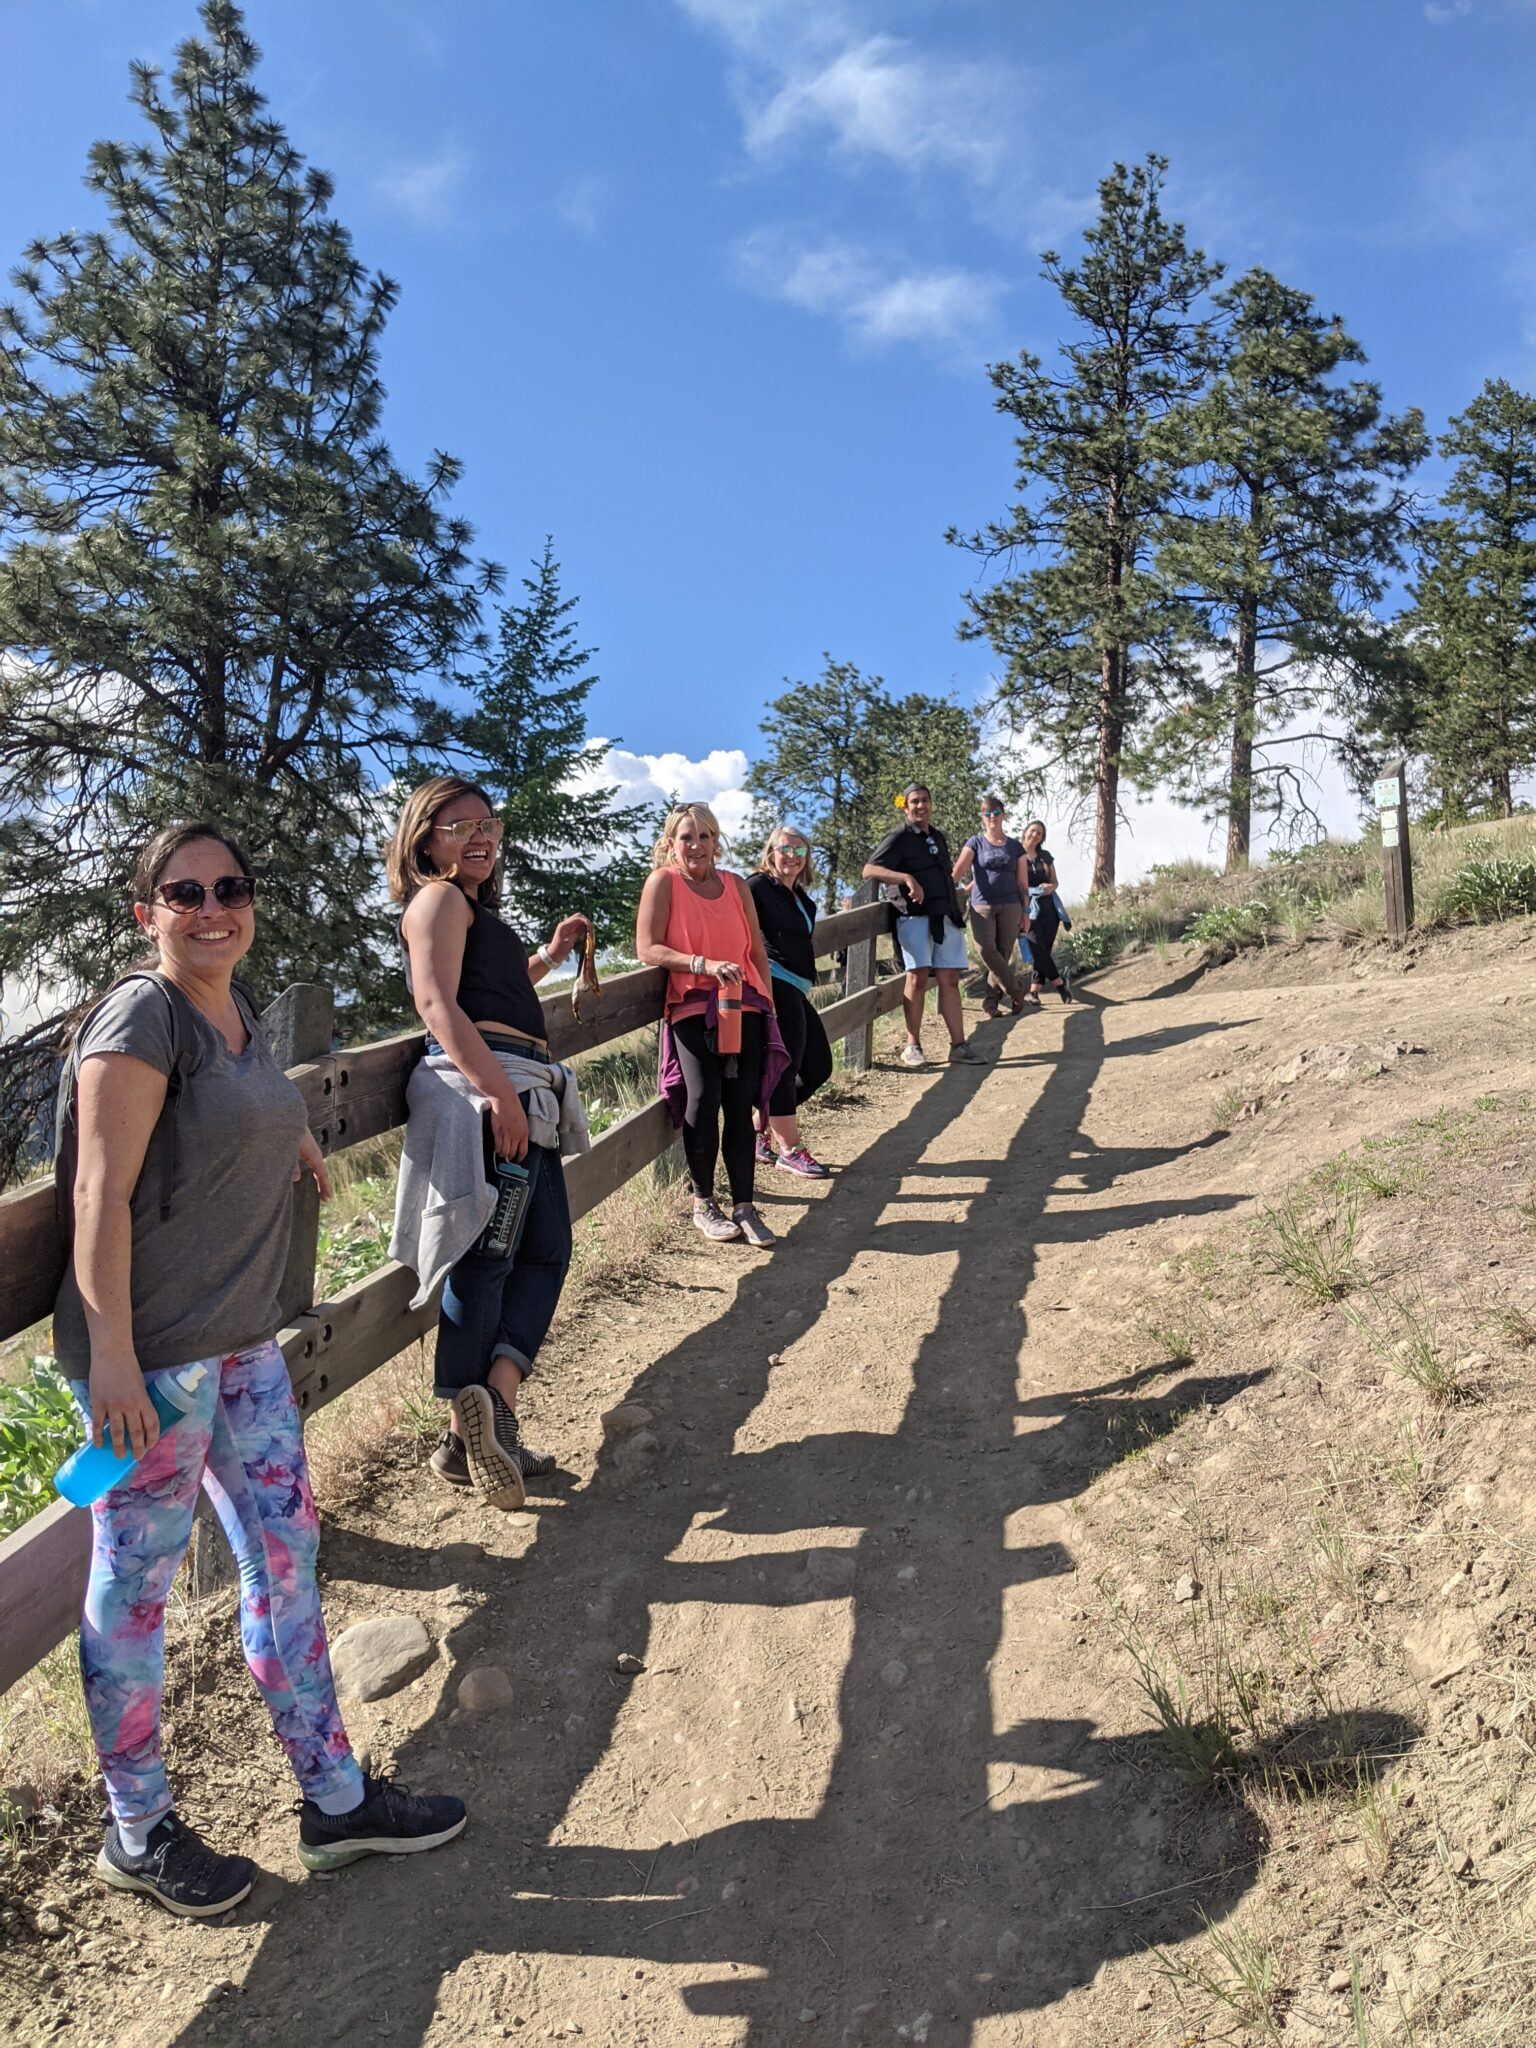 7 people lean on a fence along a dirt trail.